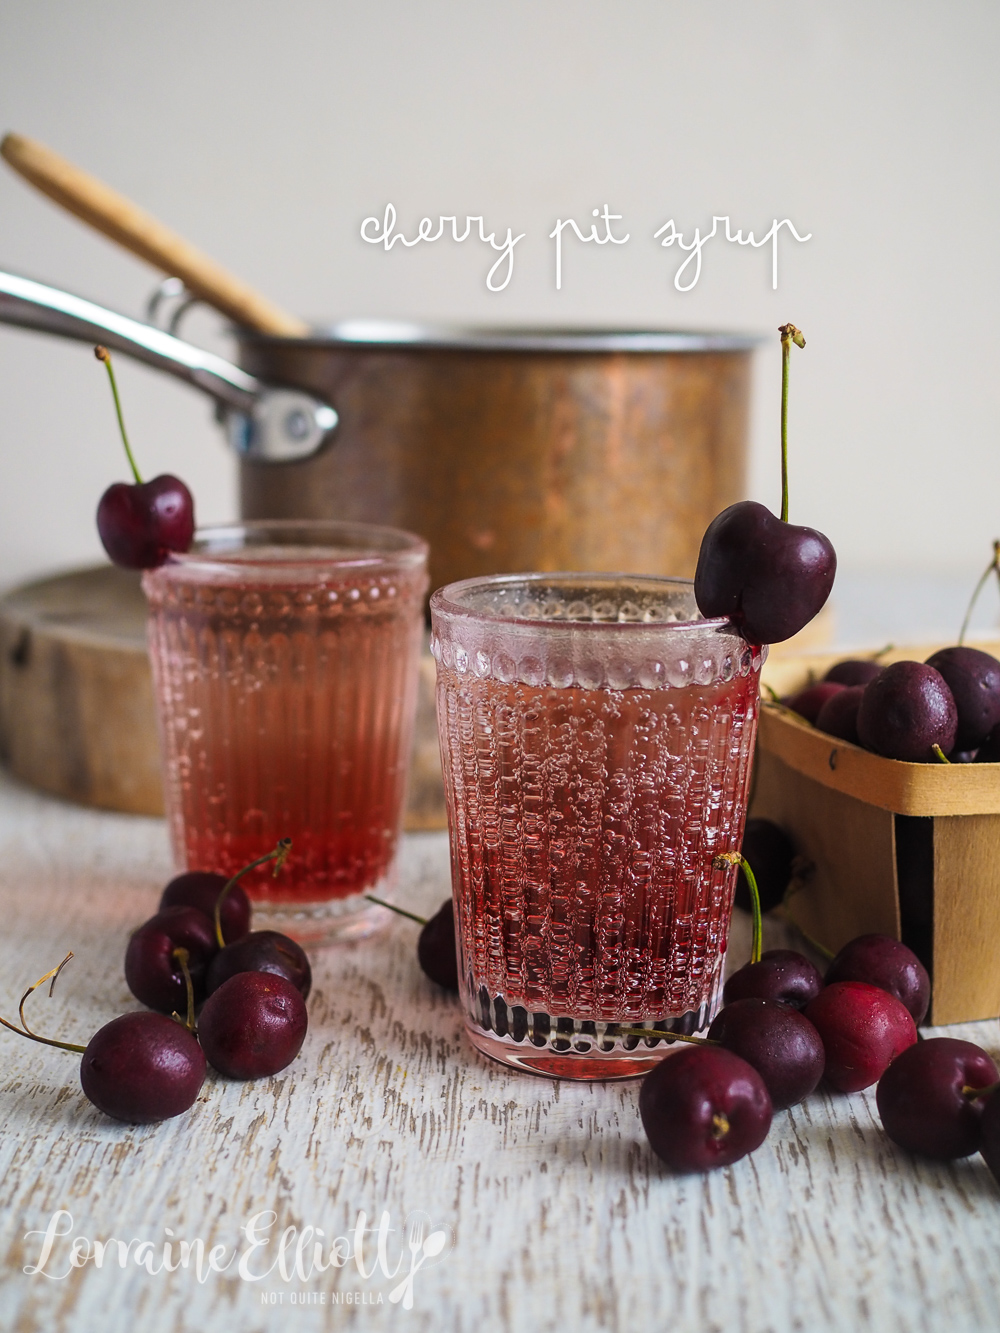 Cherry Pit Syrup